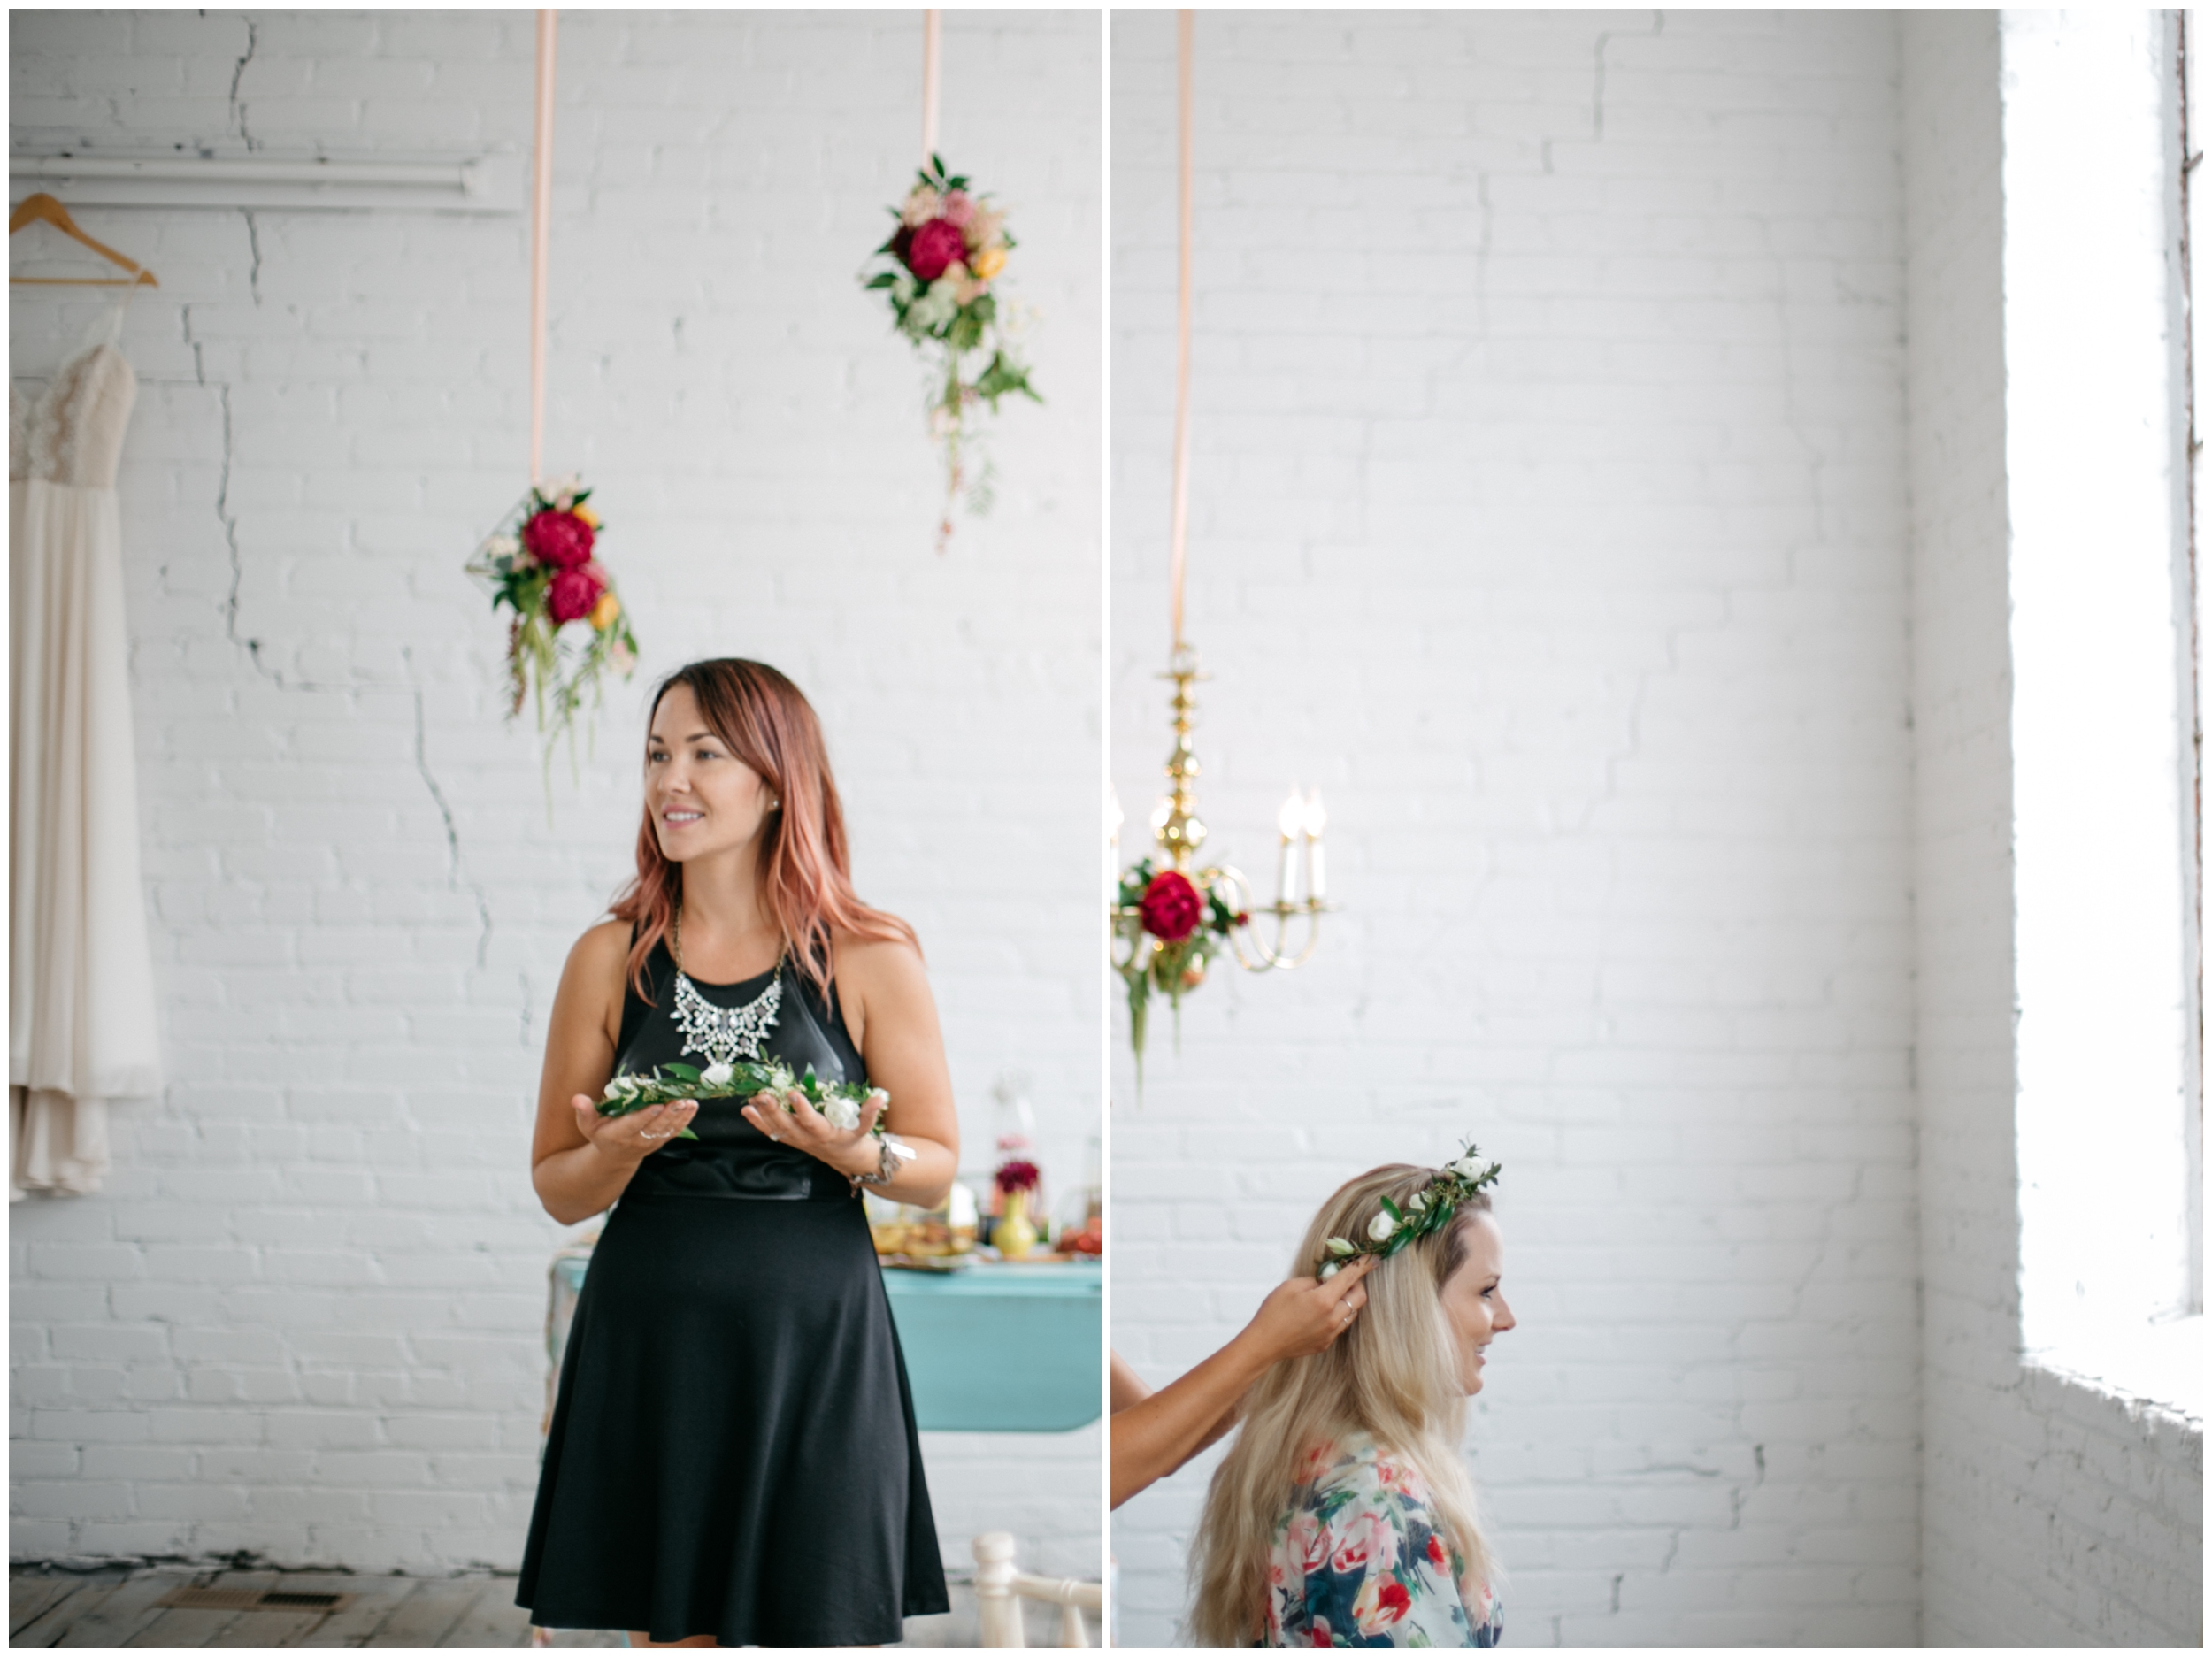 Bride putting on floral crown for boho wedding